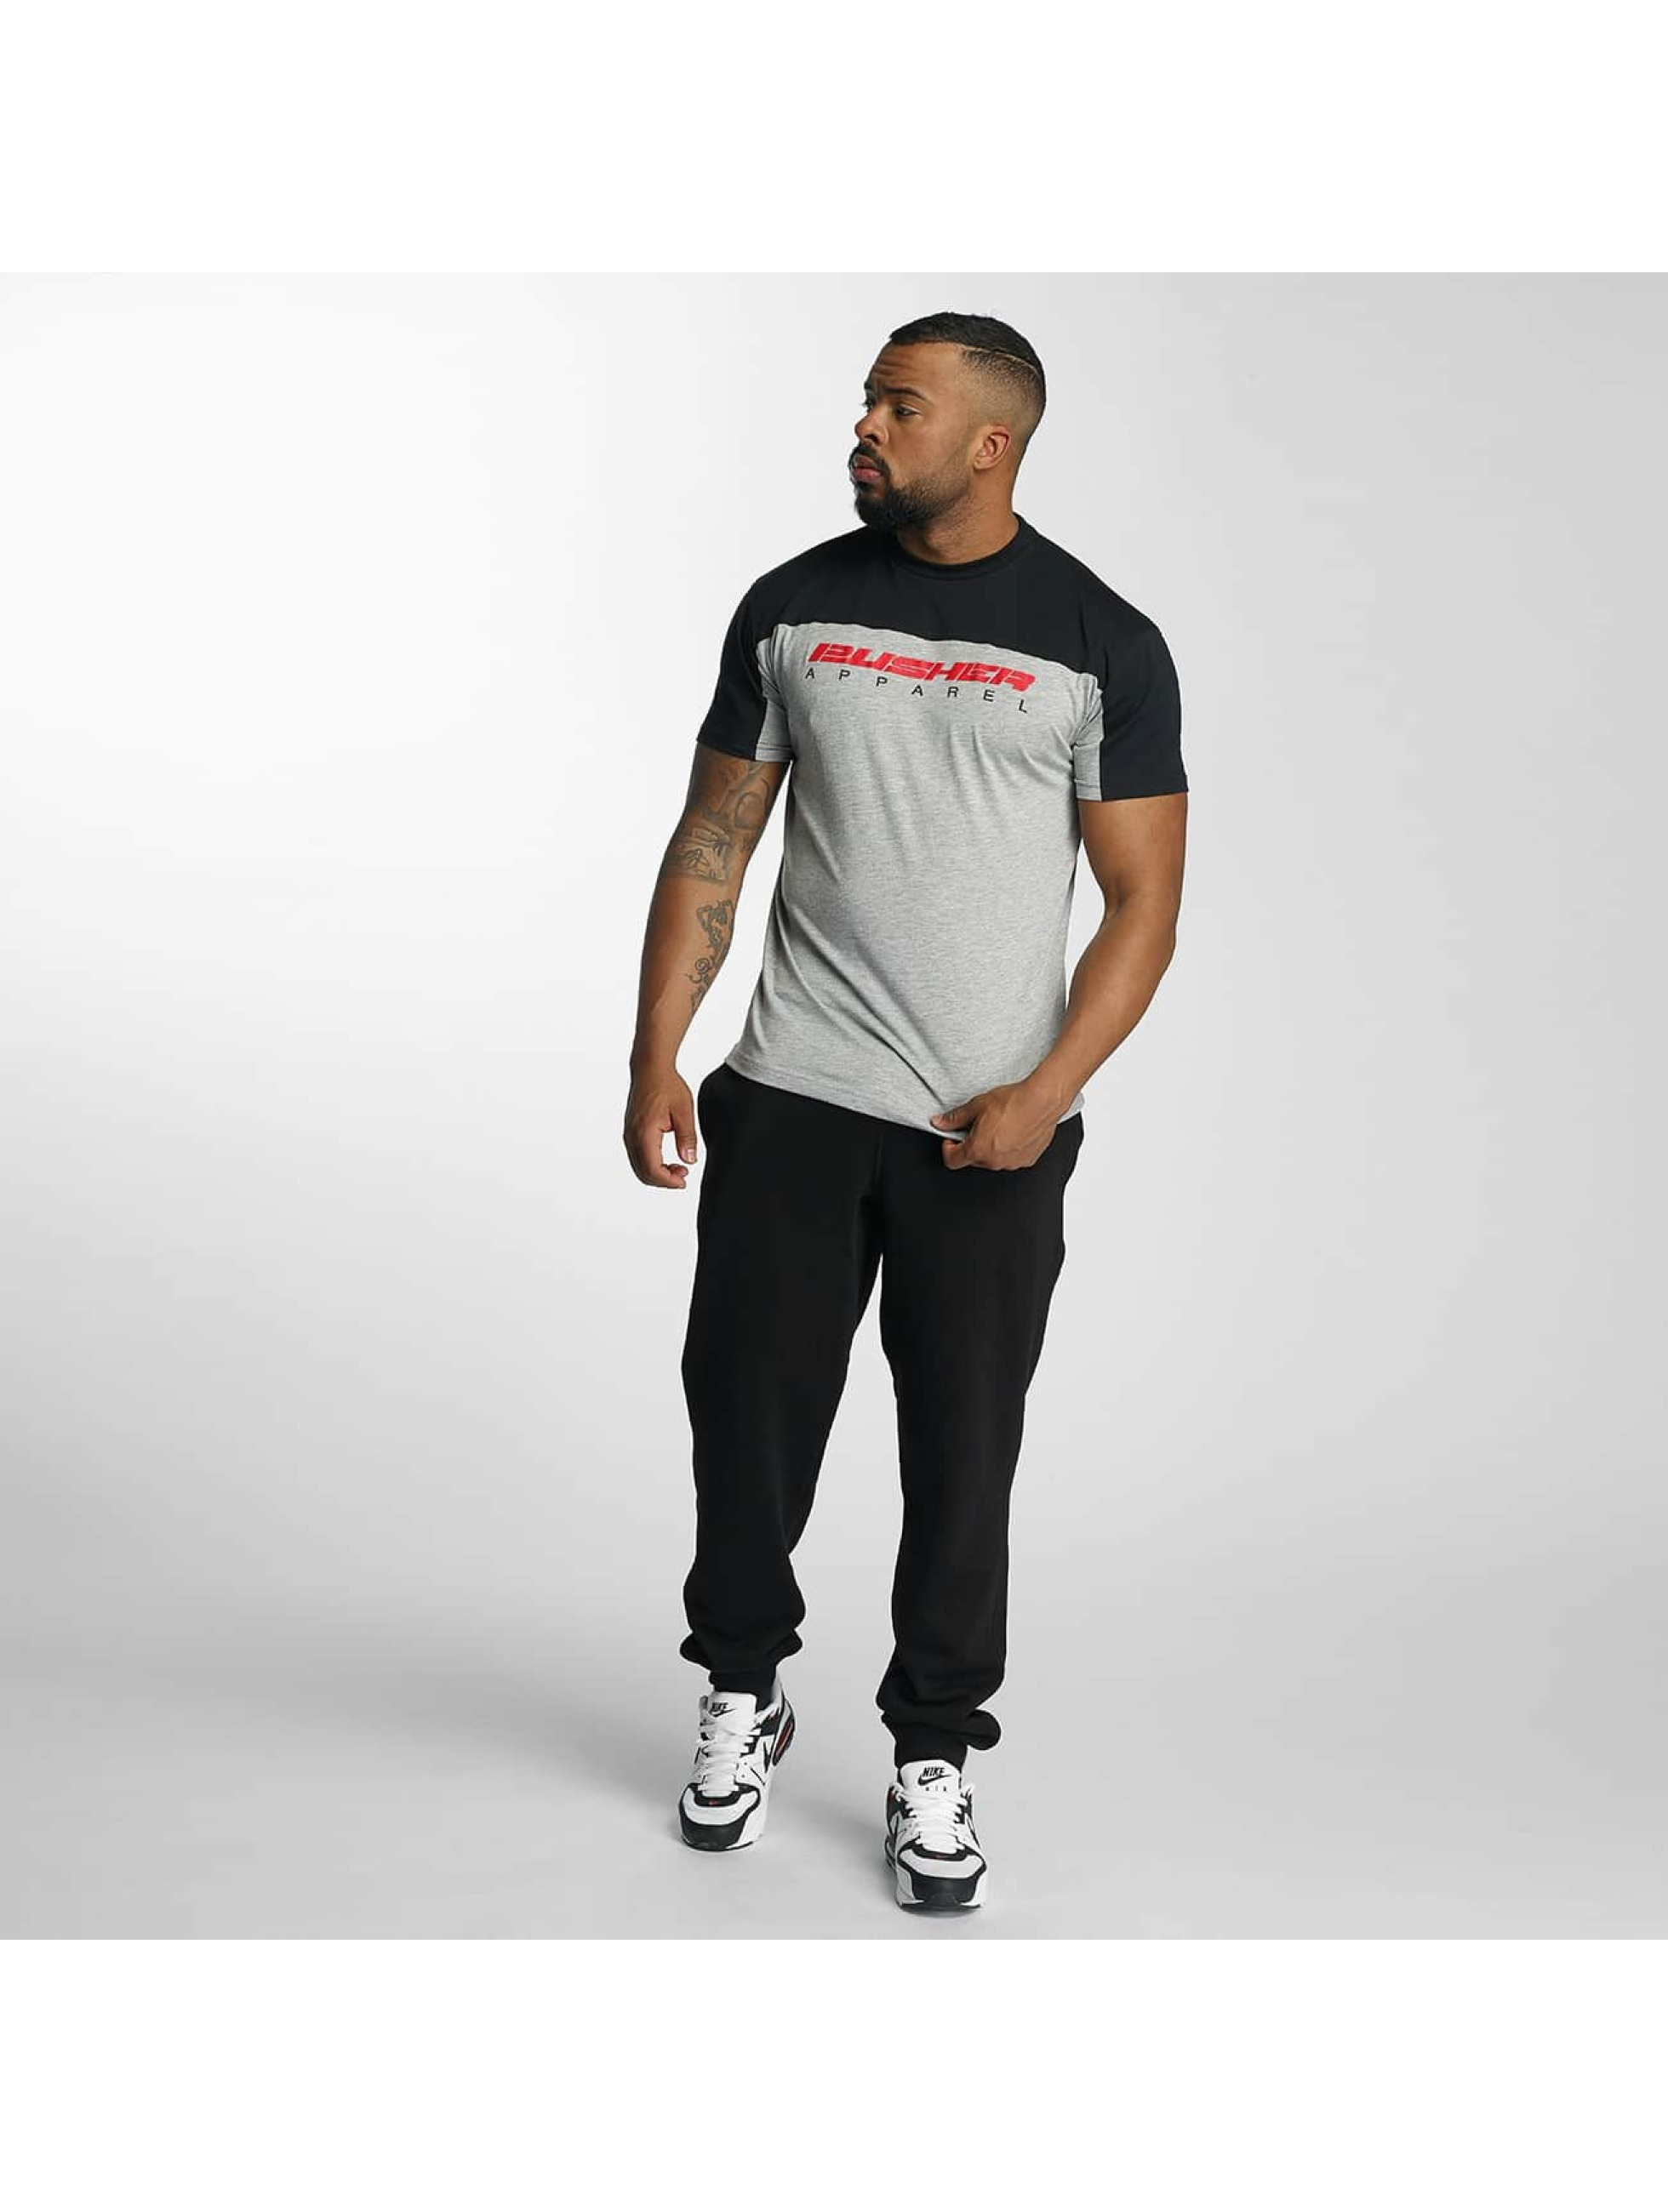 Pusher Apparel T-Shirt 137 Riot gray